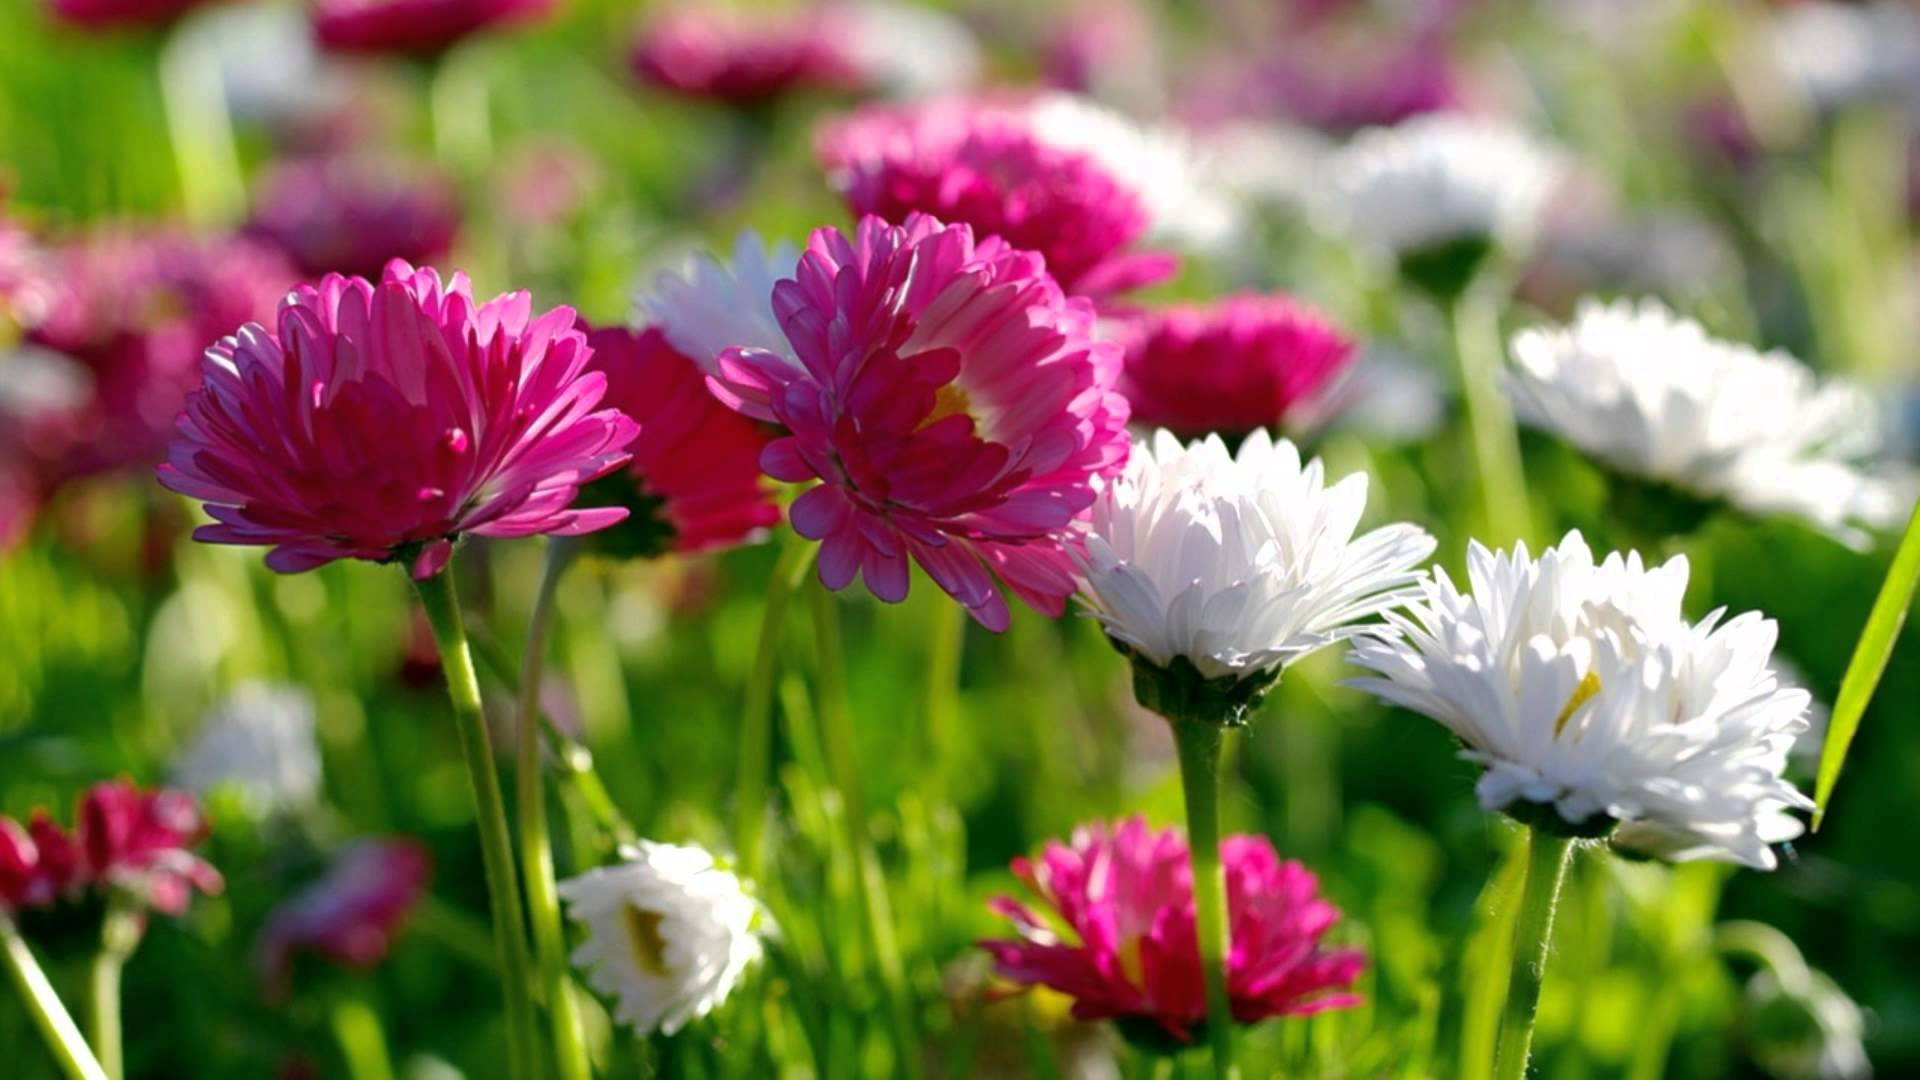 Most Beautiful Flowers Wallpapers In The World